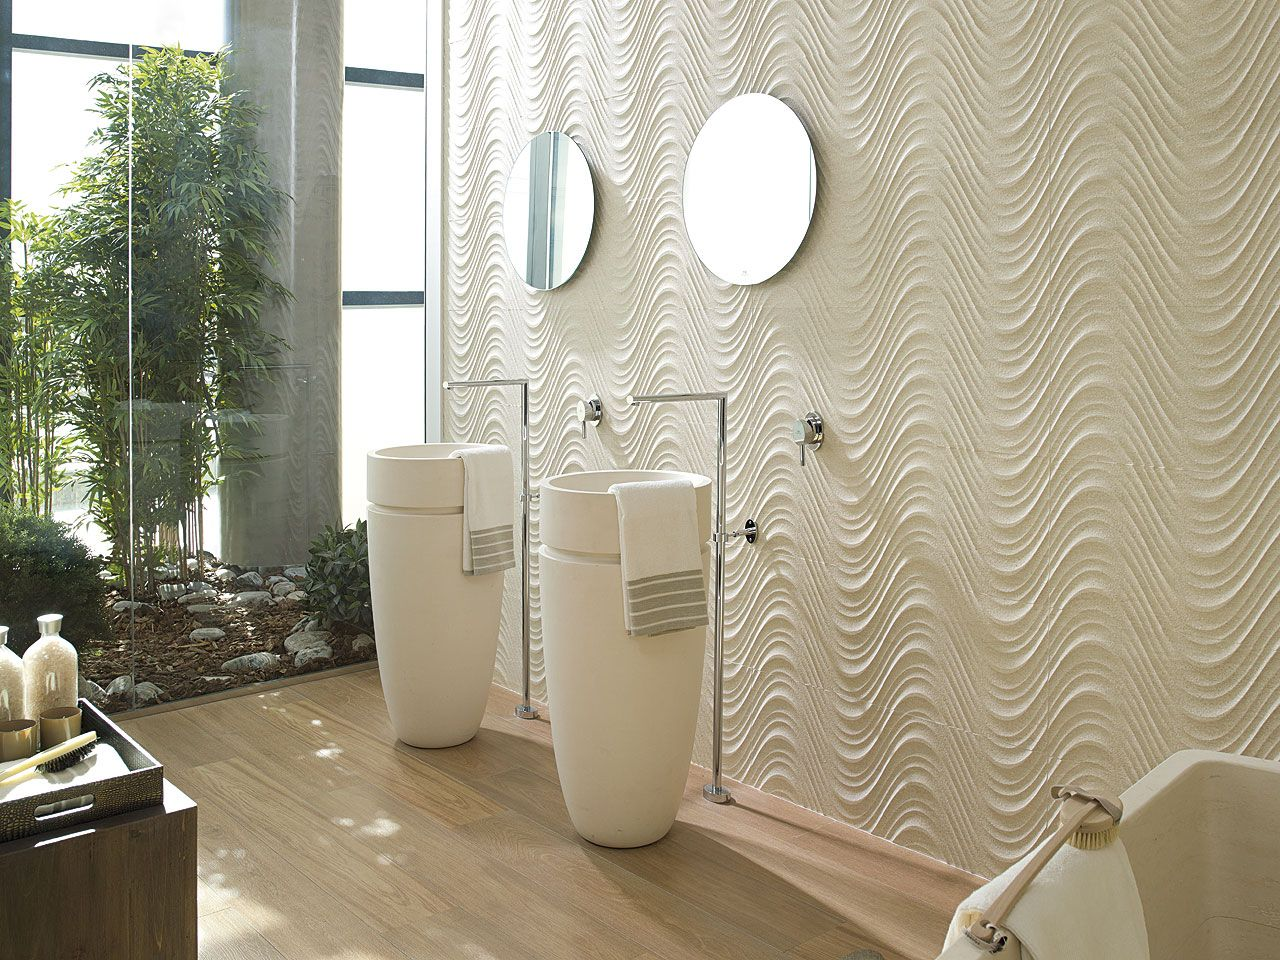 Porcelanosa 39 s beautiful wave ceramic tiles wall tiles for Marfil ceramica madrid